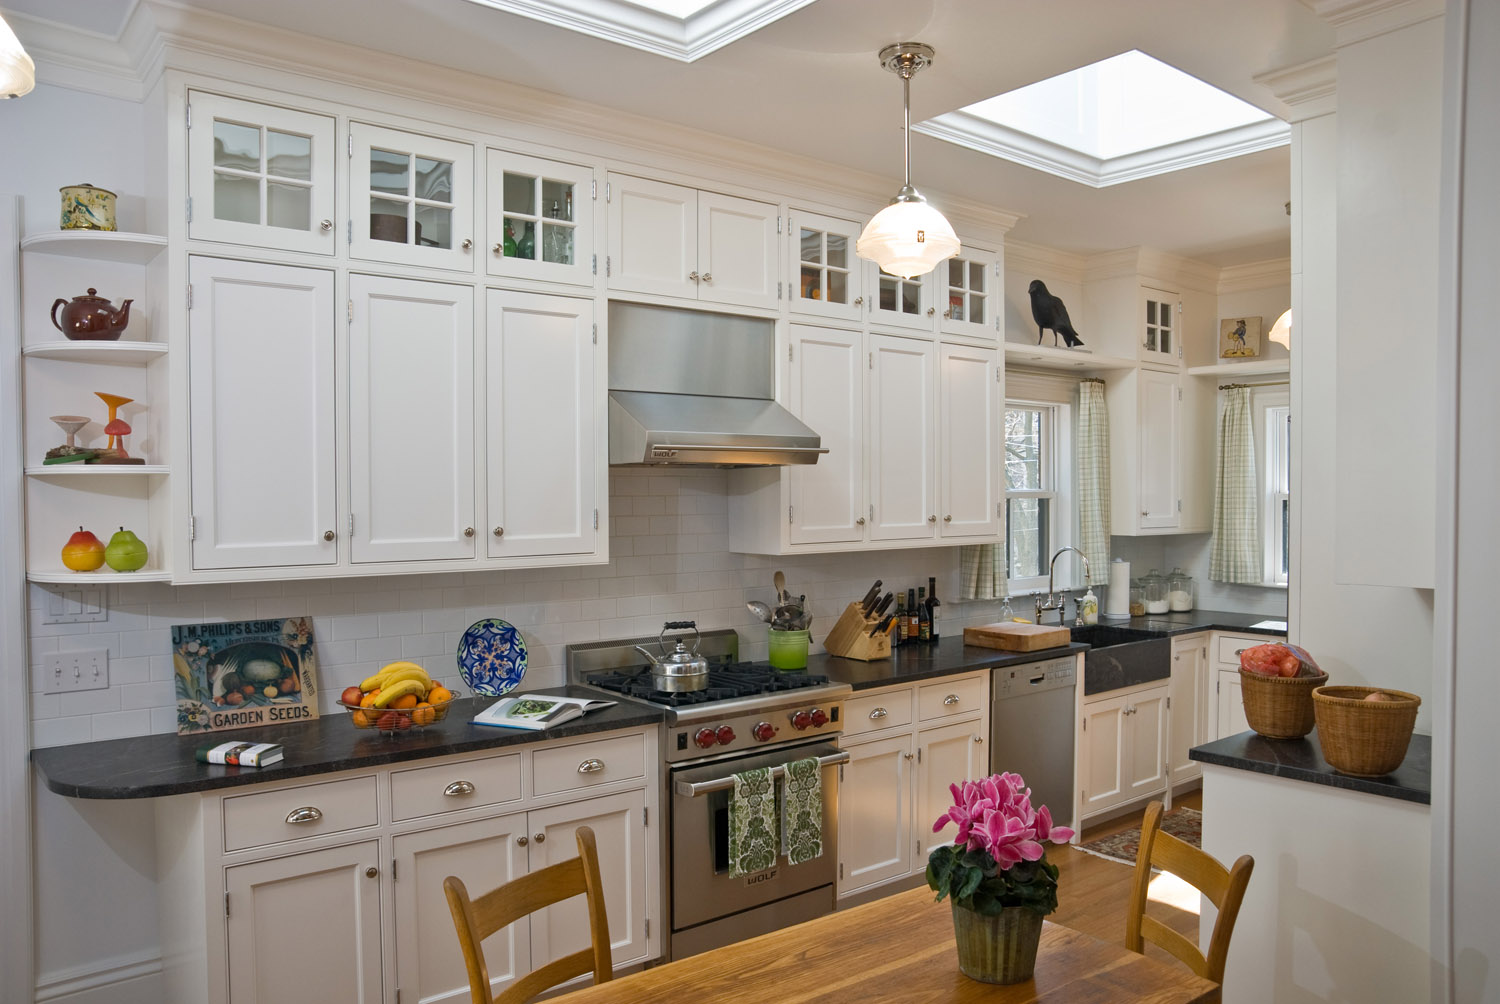 interior photo of residential kitchen